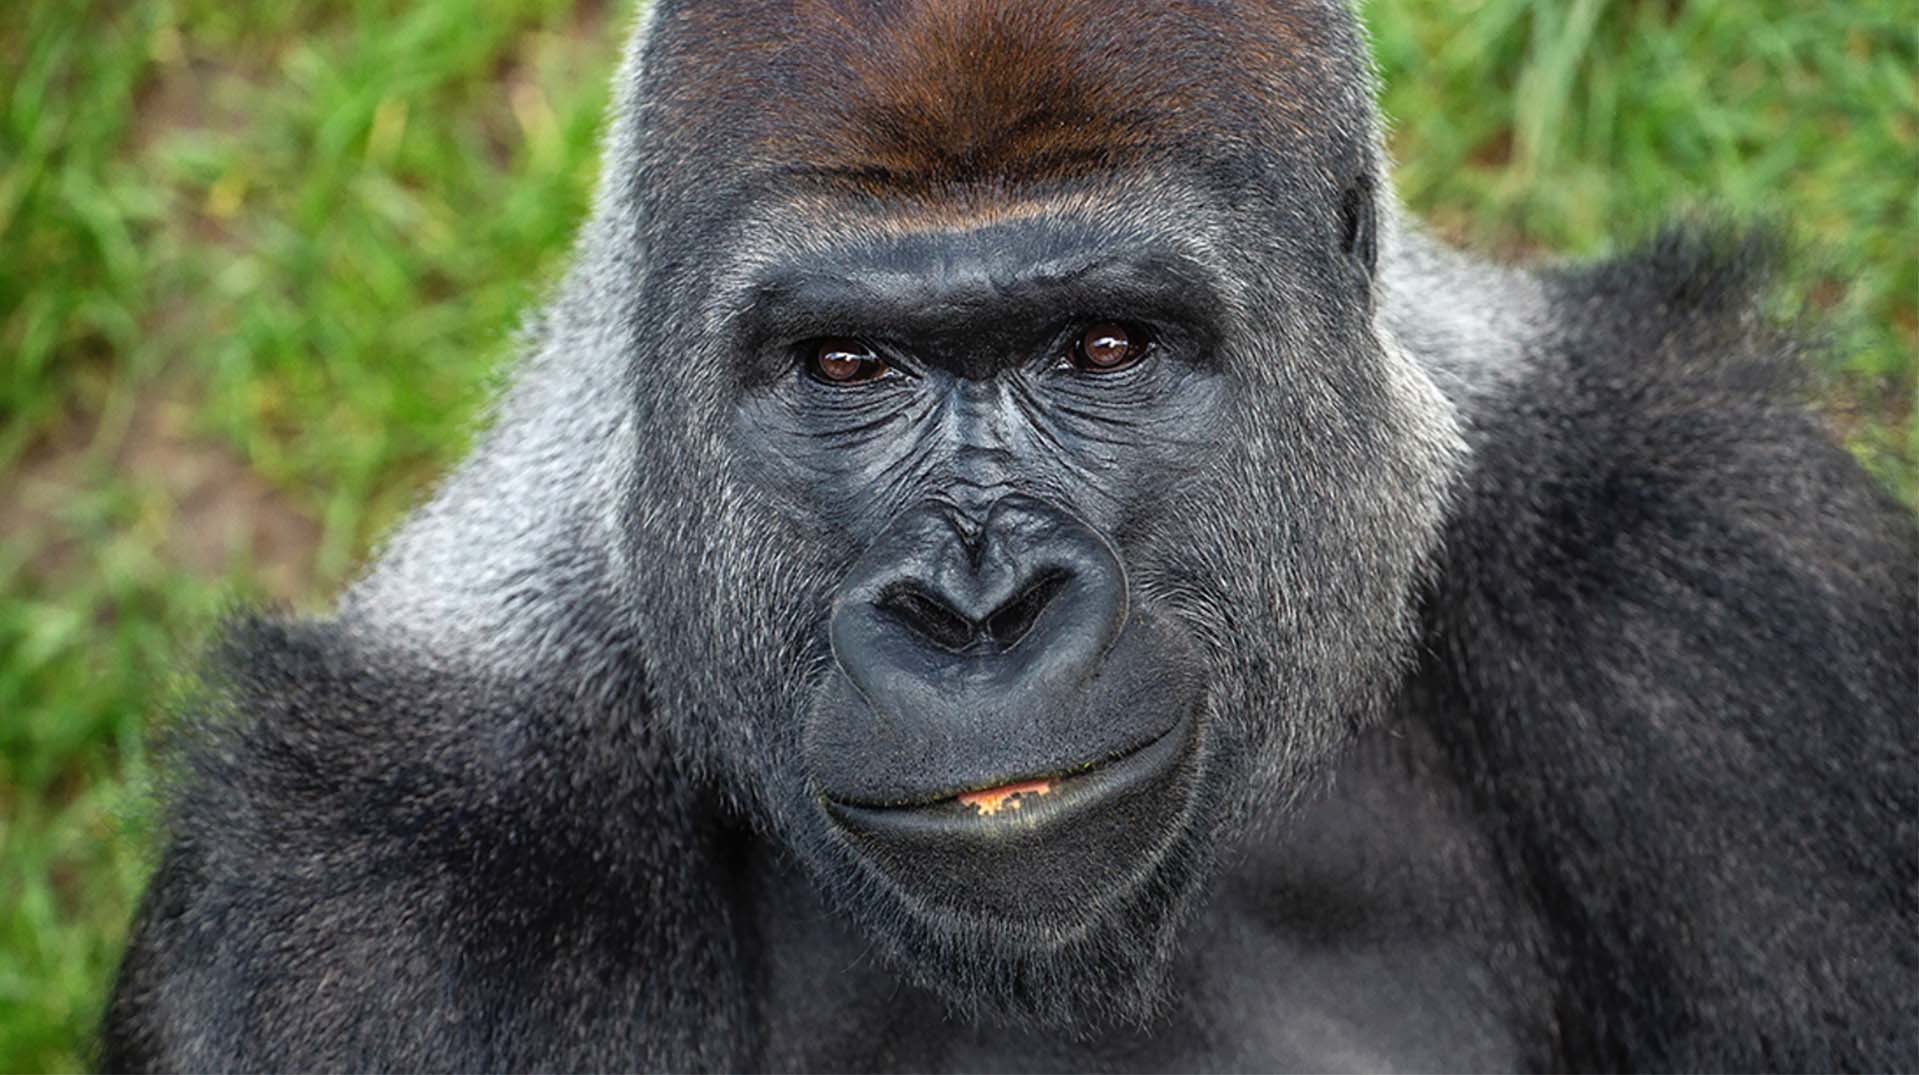 The face of an adult, male gorilla.